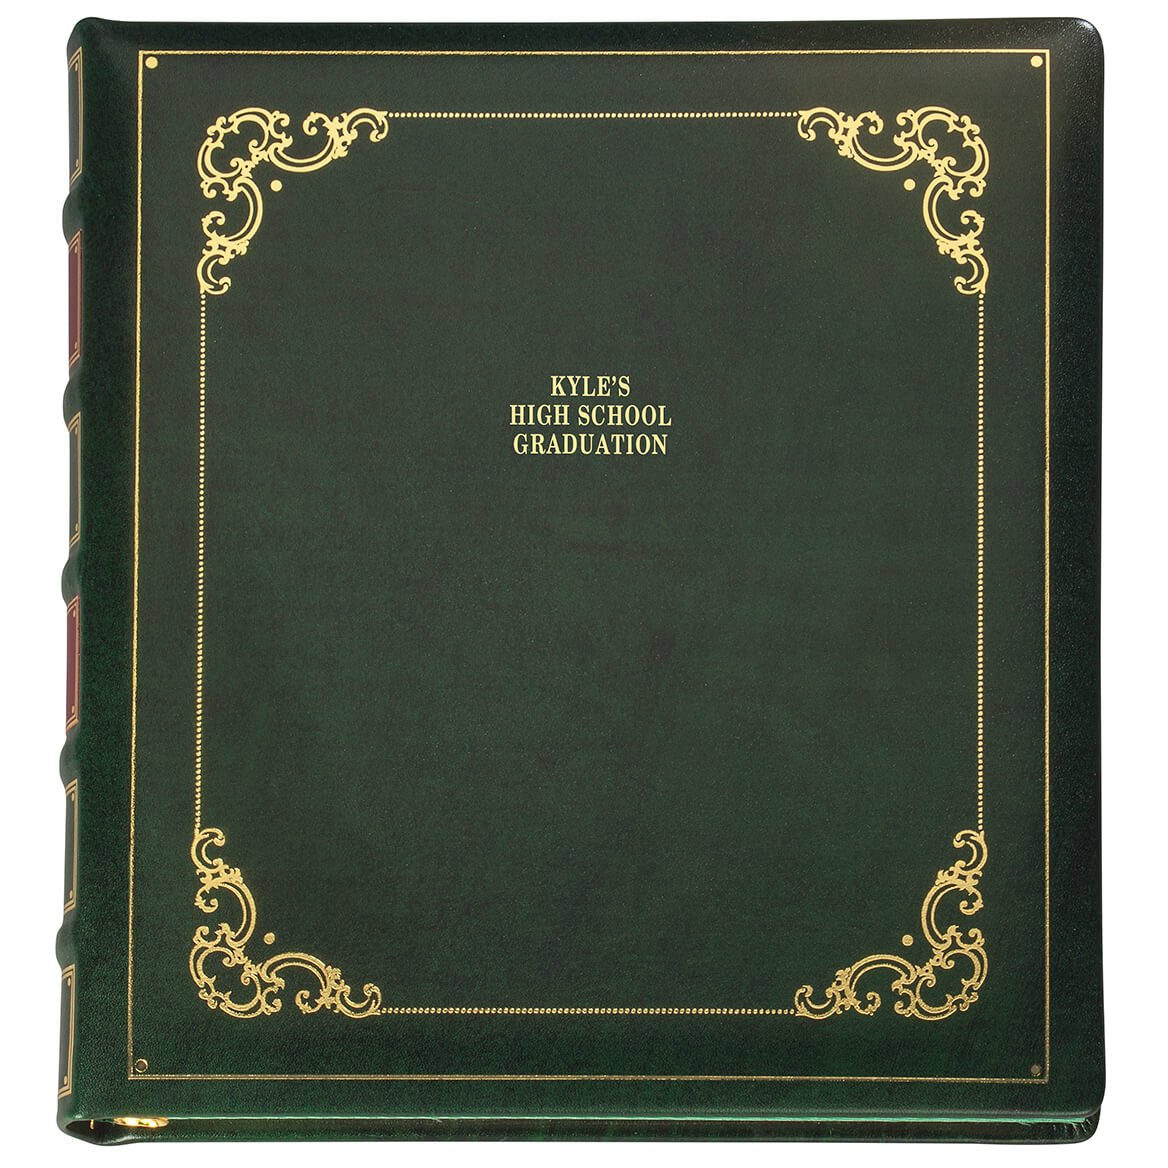 Personalized Library Leather Album - Hunter 3 Lines